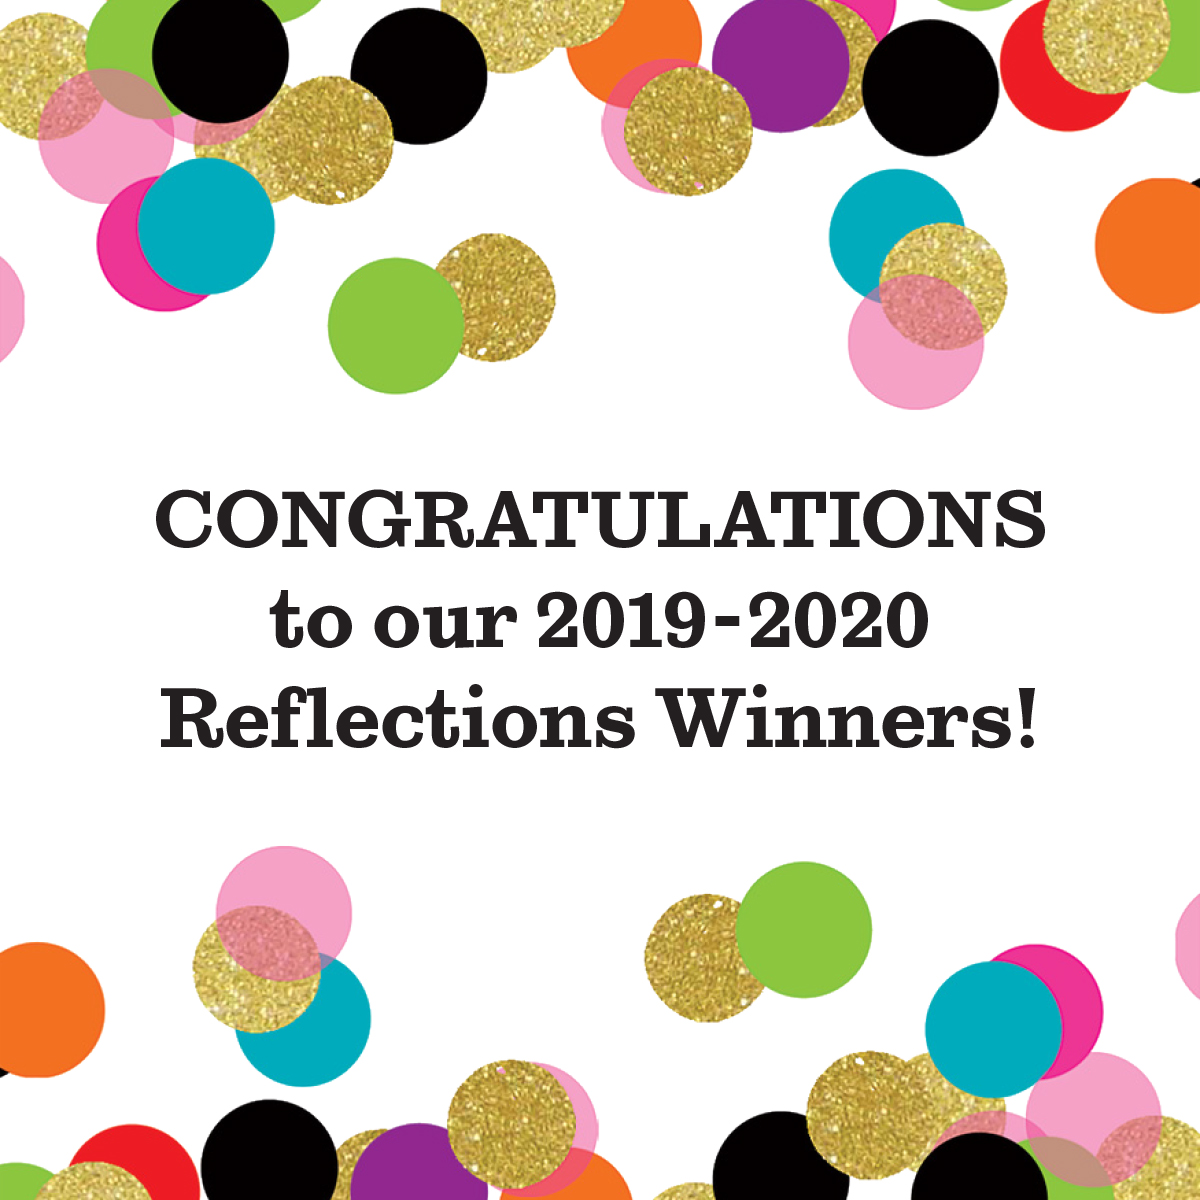 Congratulations to our 2019-2020 Reflections Winners! #PTAReflections #ShowYourArt pic.twitter.com/lEzIOQnEKX